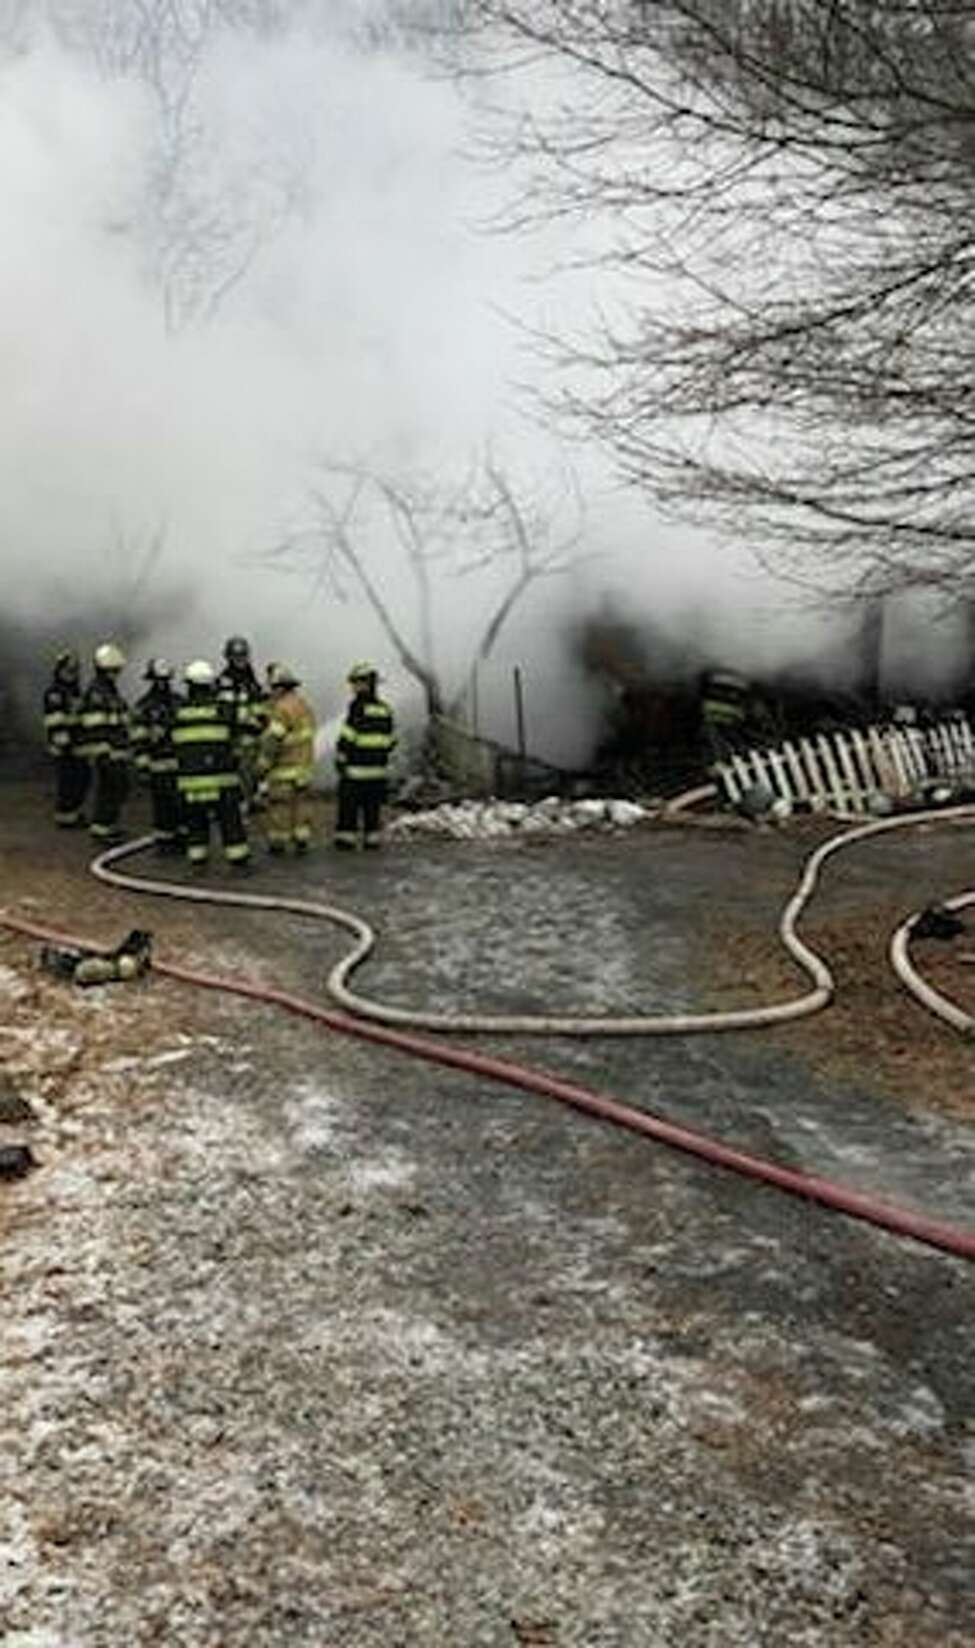 Cairo police in Greene County posted a picture on Facebook of the fire on Old Route 23 that claimed the life of a man Saturday morning. The man's identity, and cause of the fire, is under investigation.